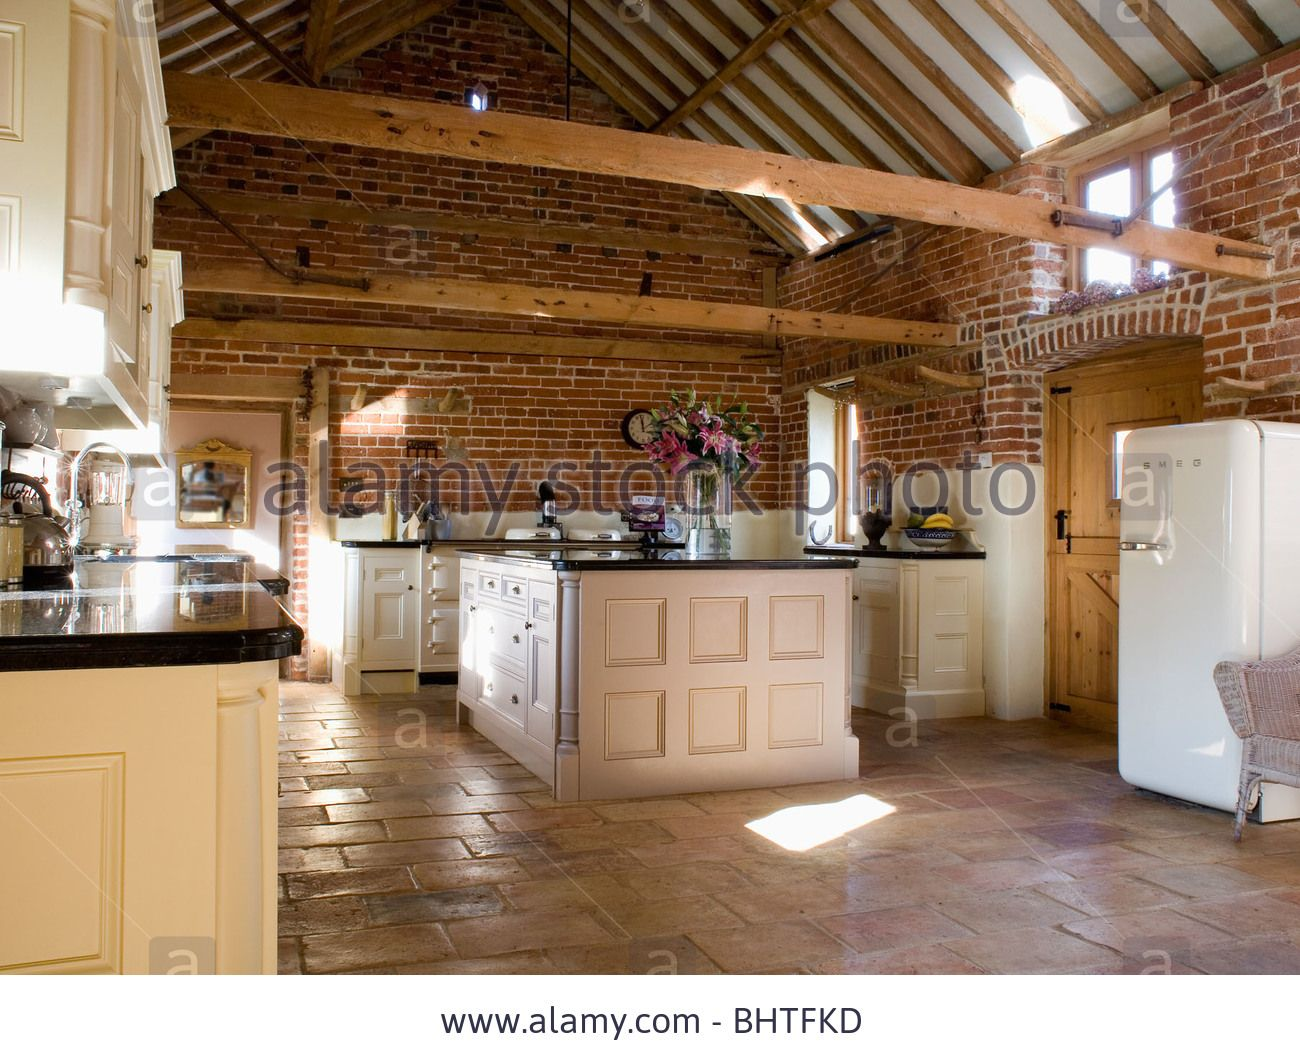 Amazing Find This Pin And More On Kitchen Ideas. Picture Of Large Barn Conversion  ... Part 13